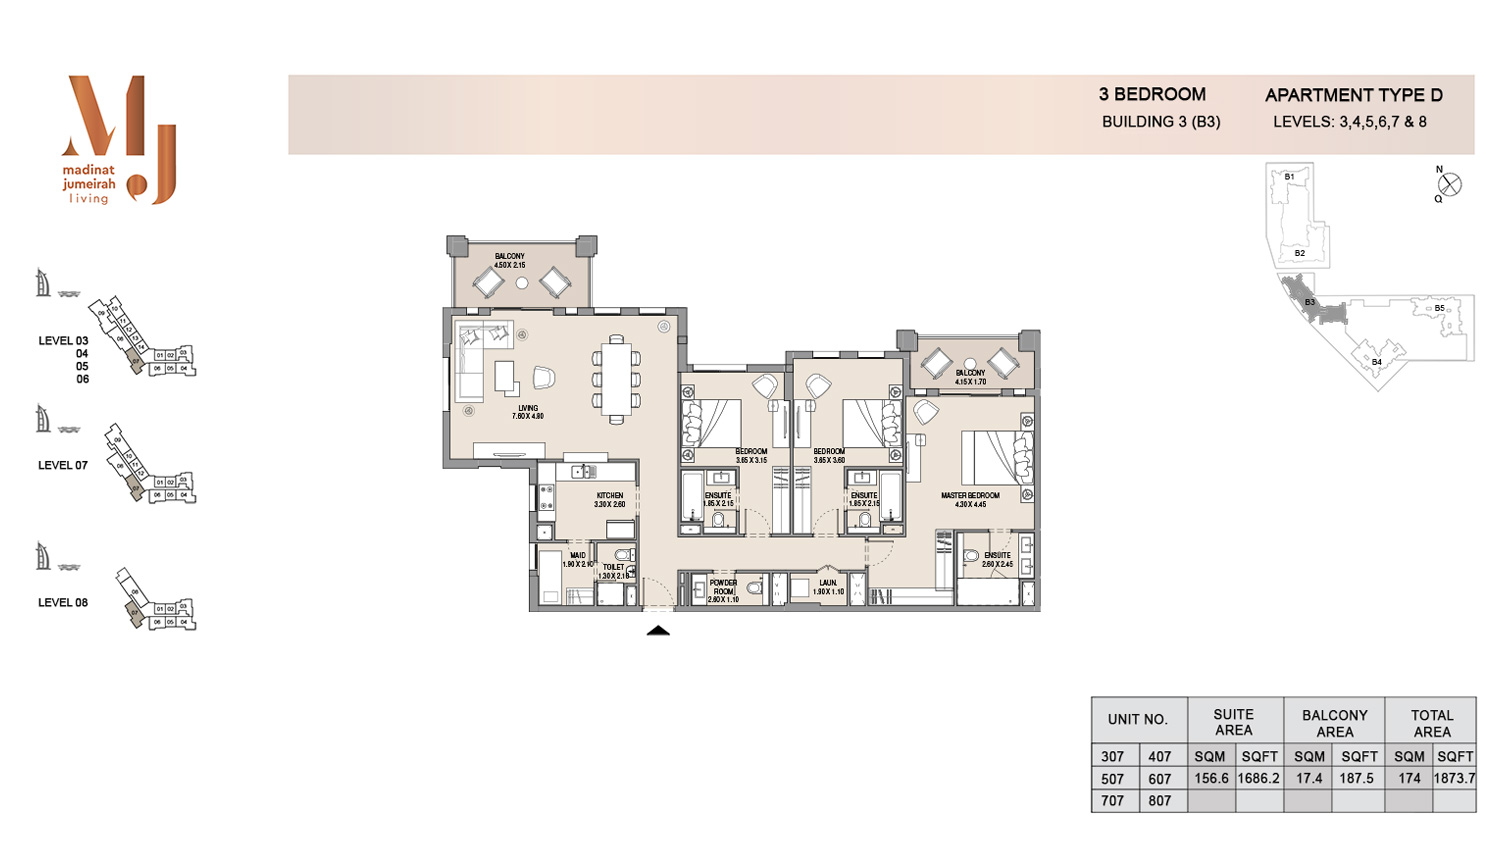 Building3 3 Bedroom, Type D, Levels 3 to 8, Size 1873.7 sq.ft